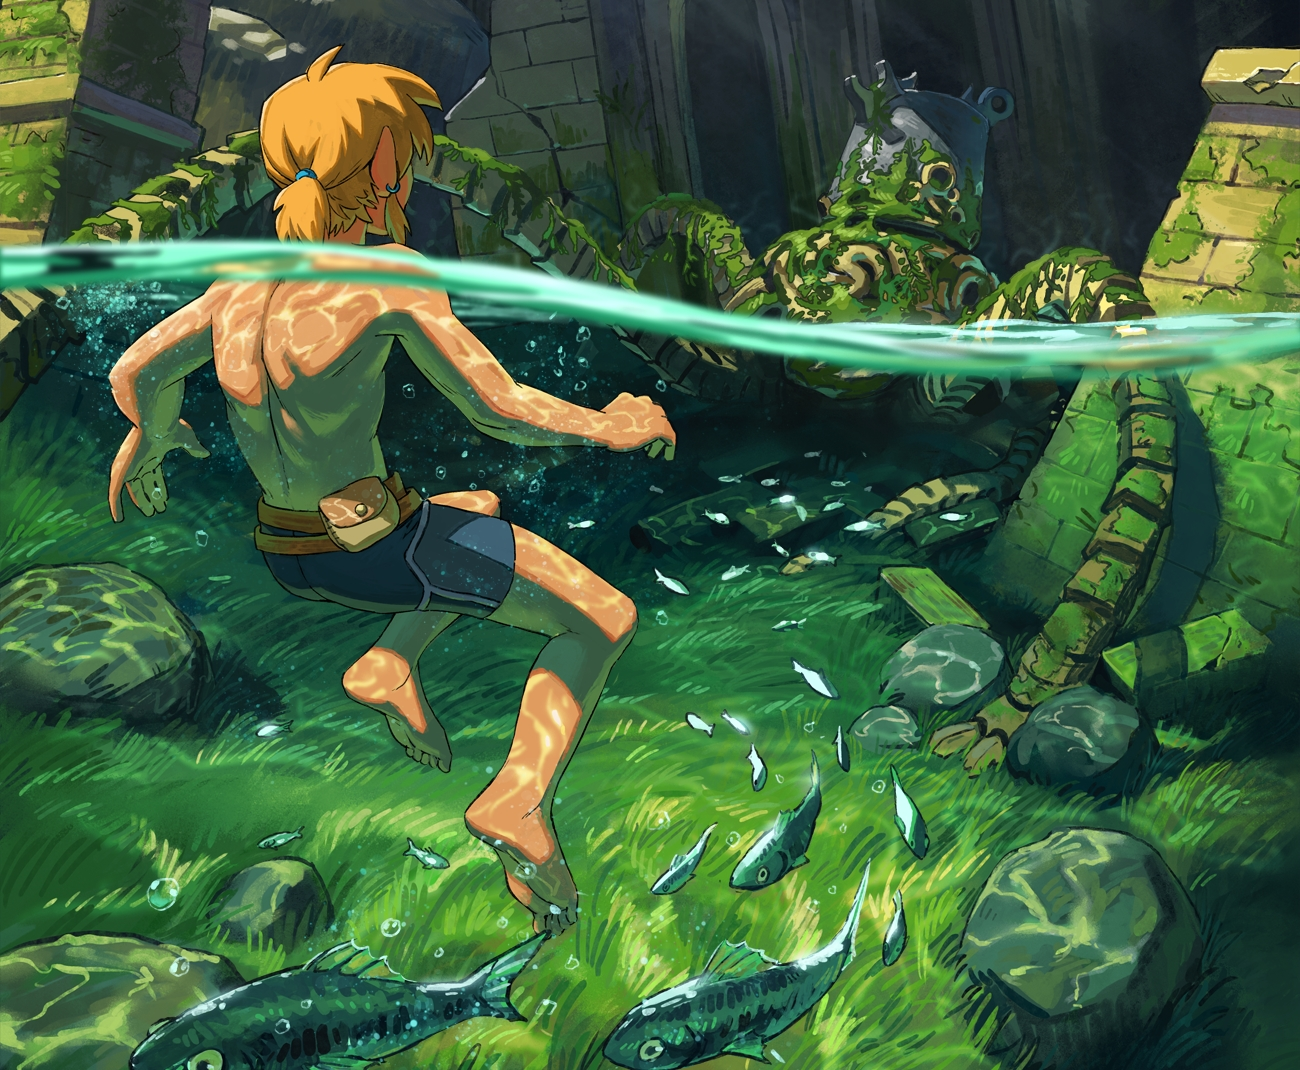 all_male animal barefoot blonde_hair cropped fish forest grass link_(zelda) male malin_falch pointed_ears ponytail robot ruins short_hair shorts the_legend_of_zelda topless tree underwater water